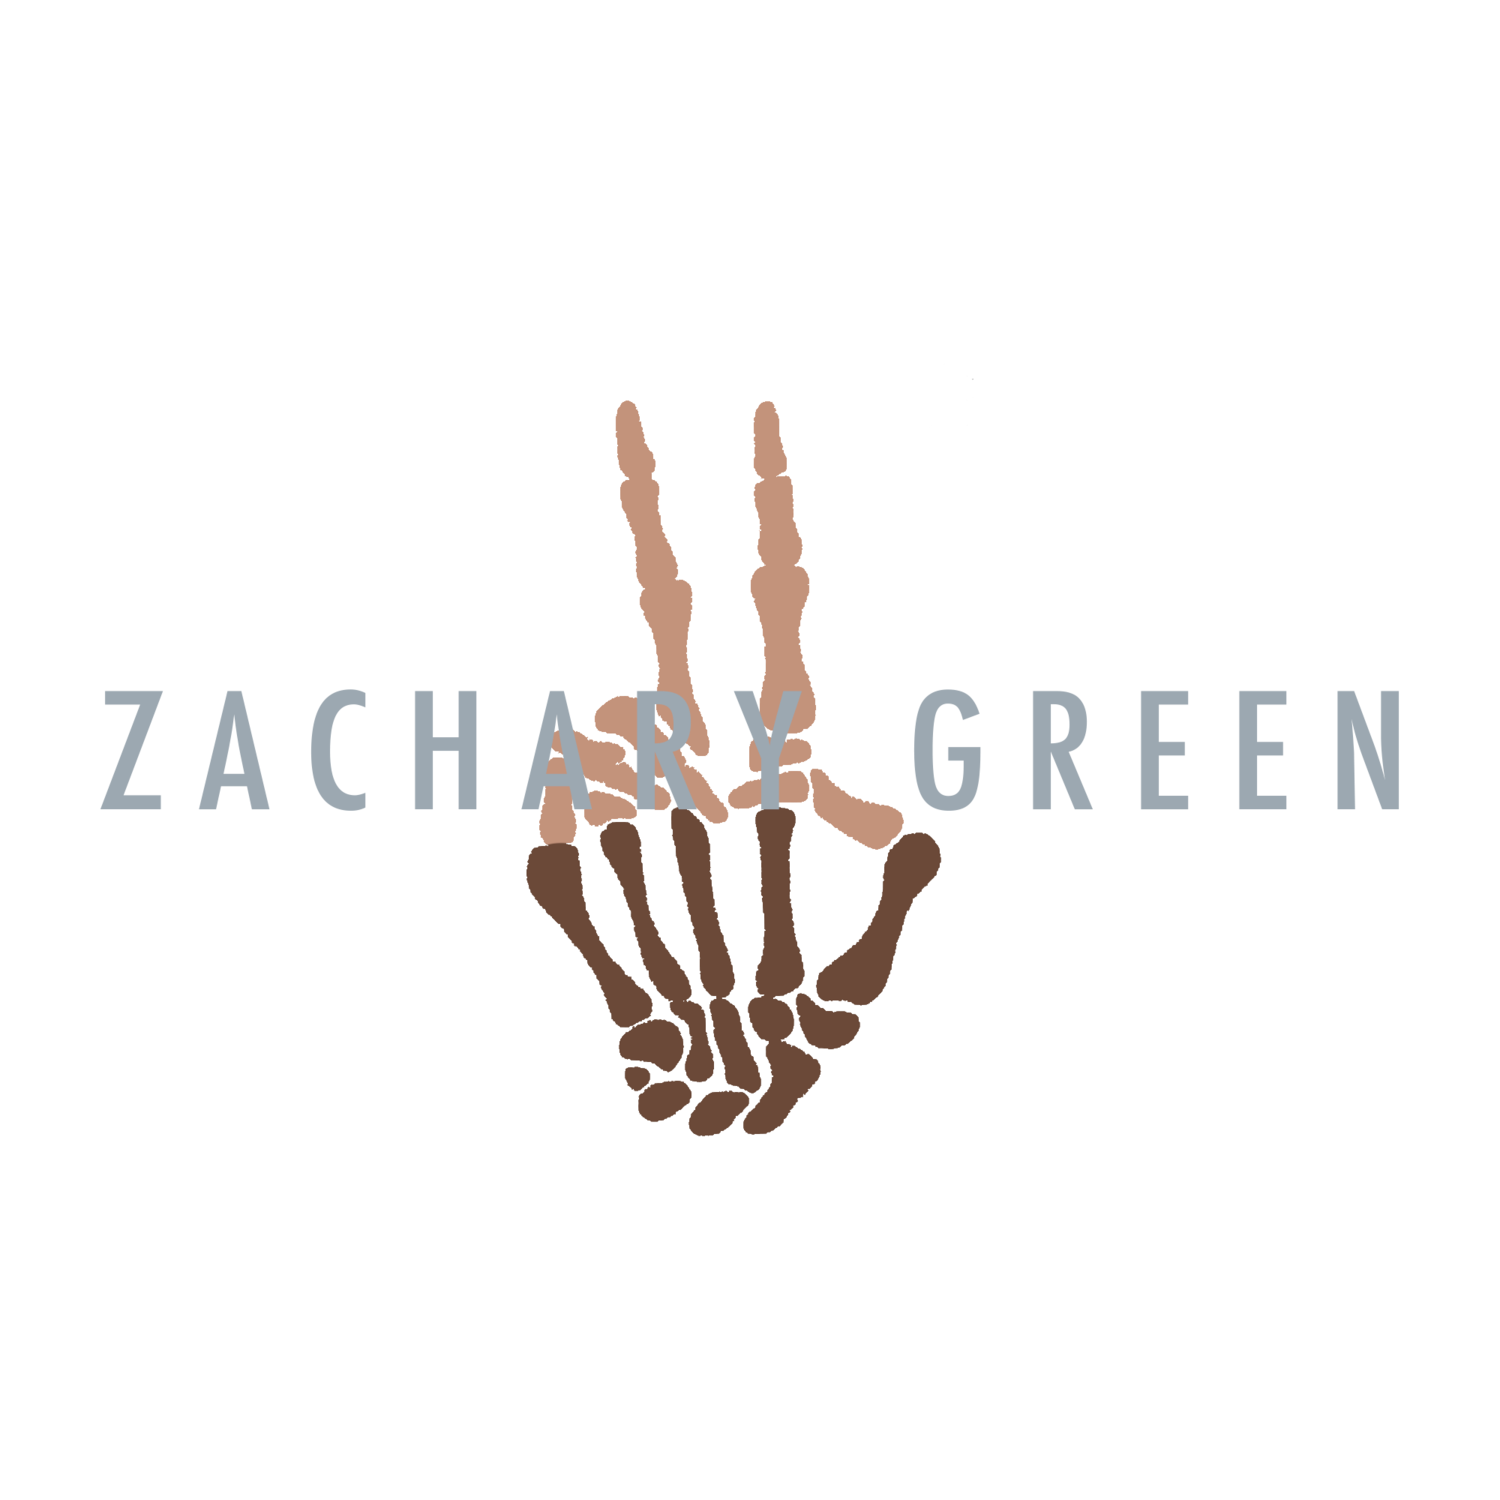 ZACHARY GREEN